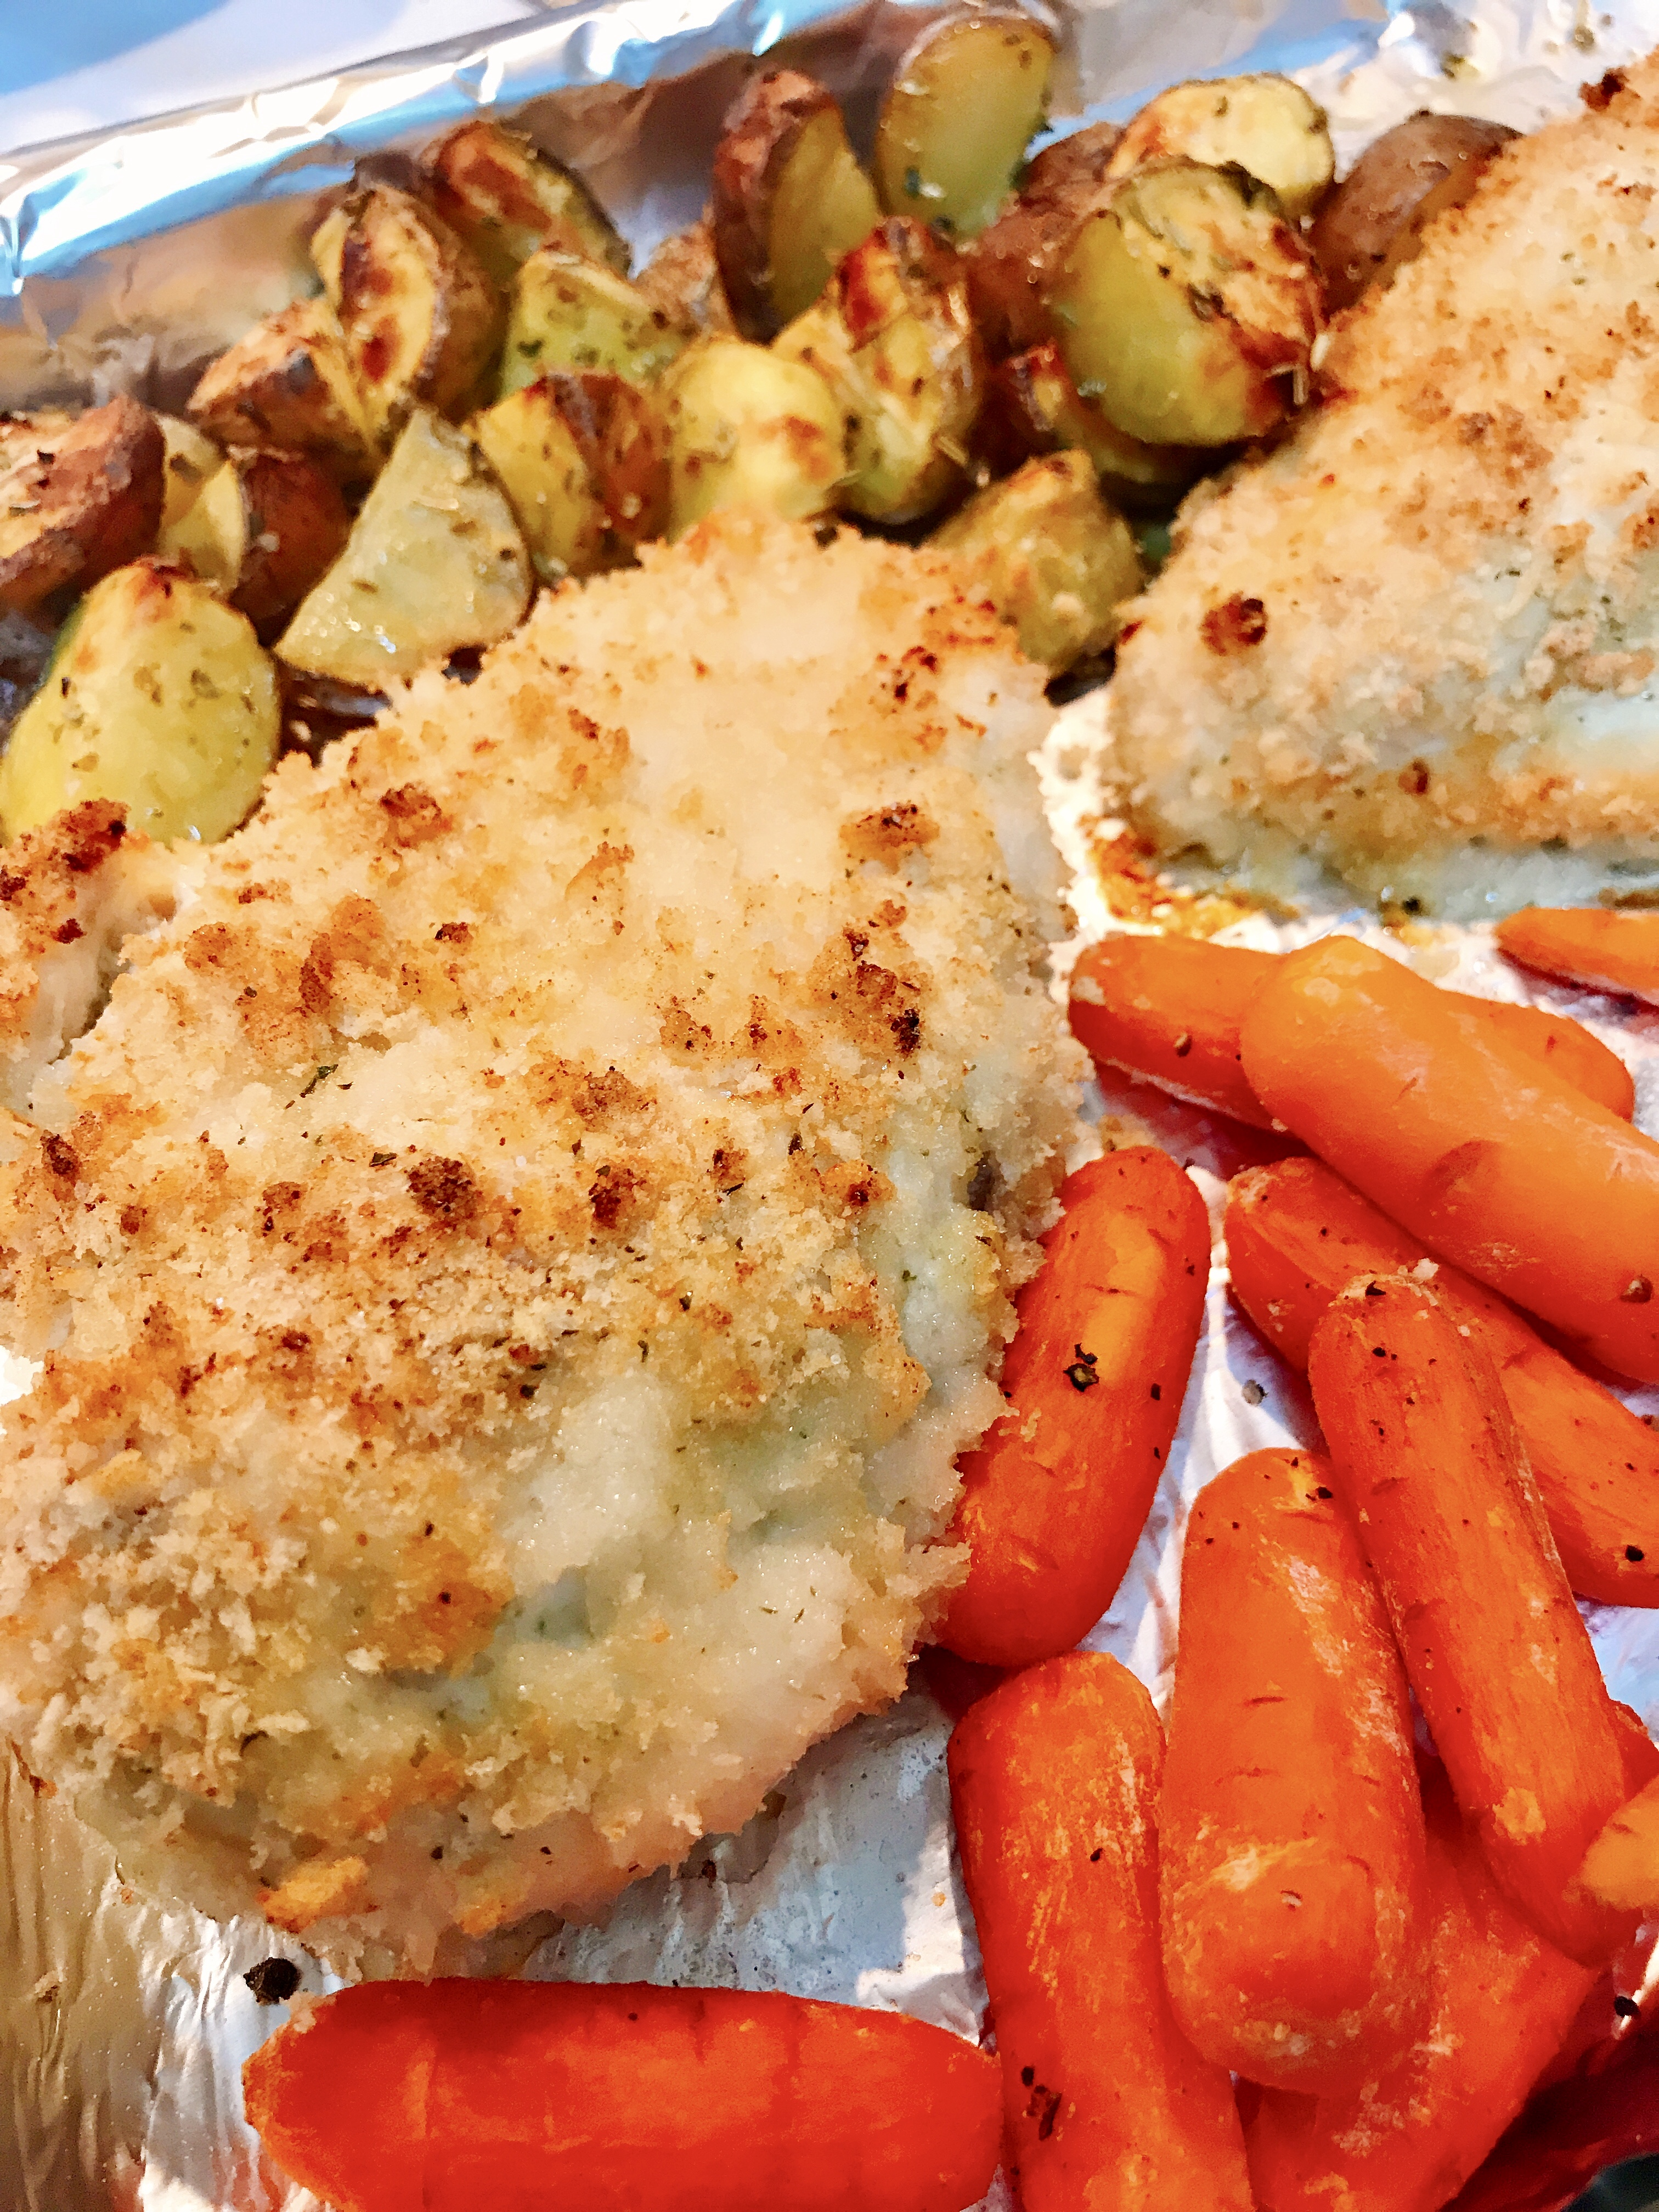 Sheet Pan Dinner with Chicken and Veggies thedailygourmet